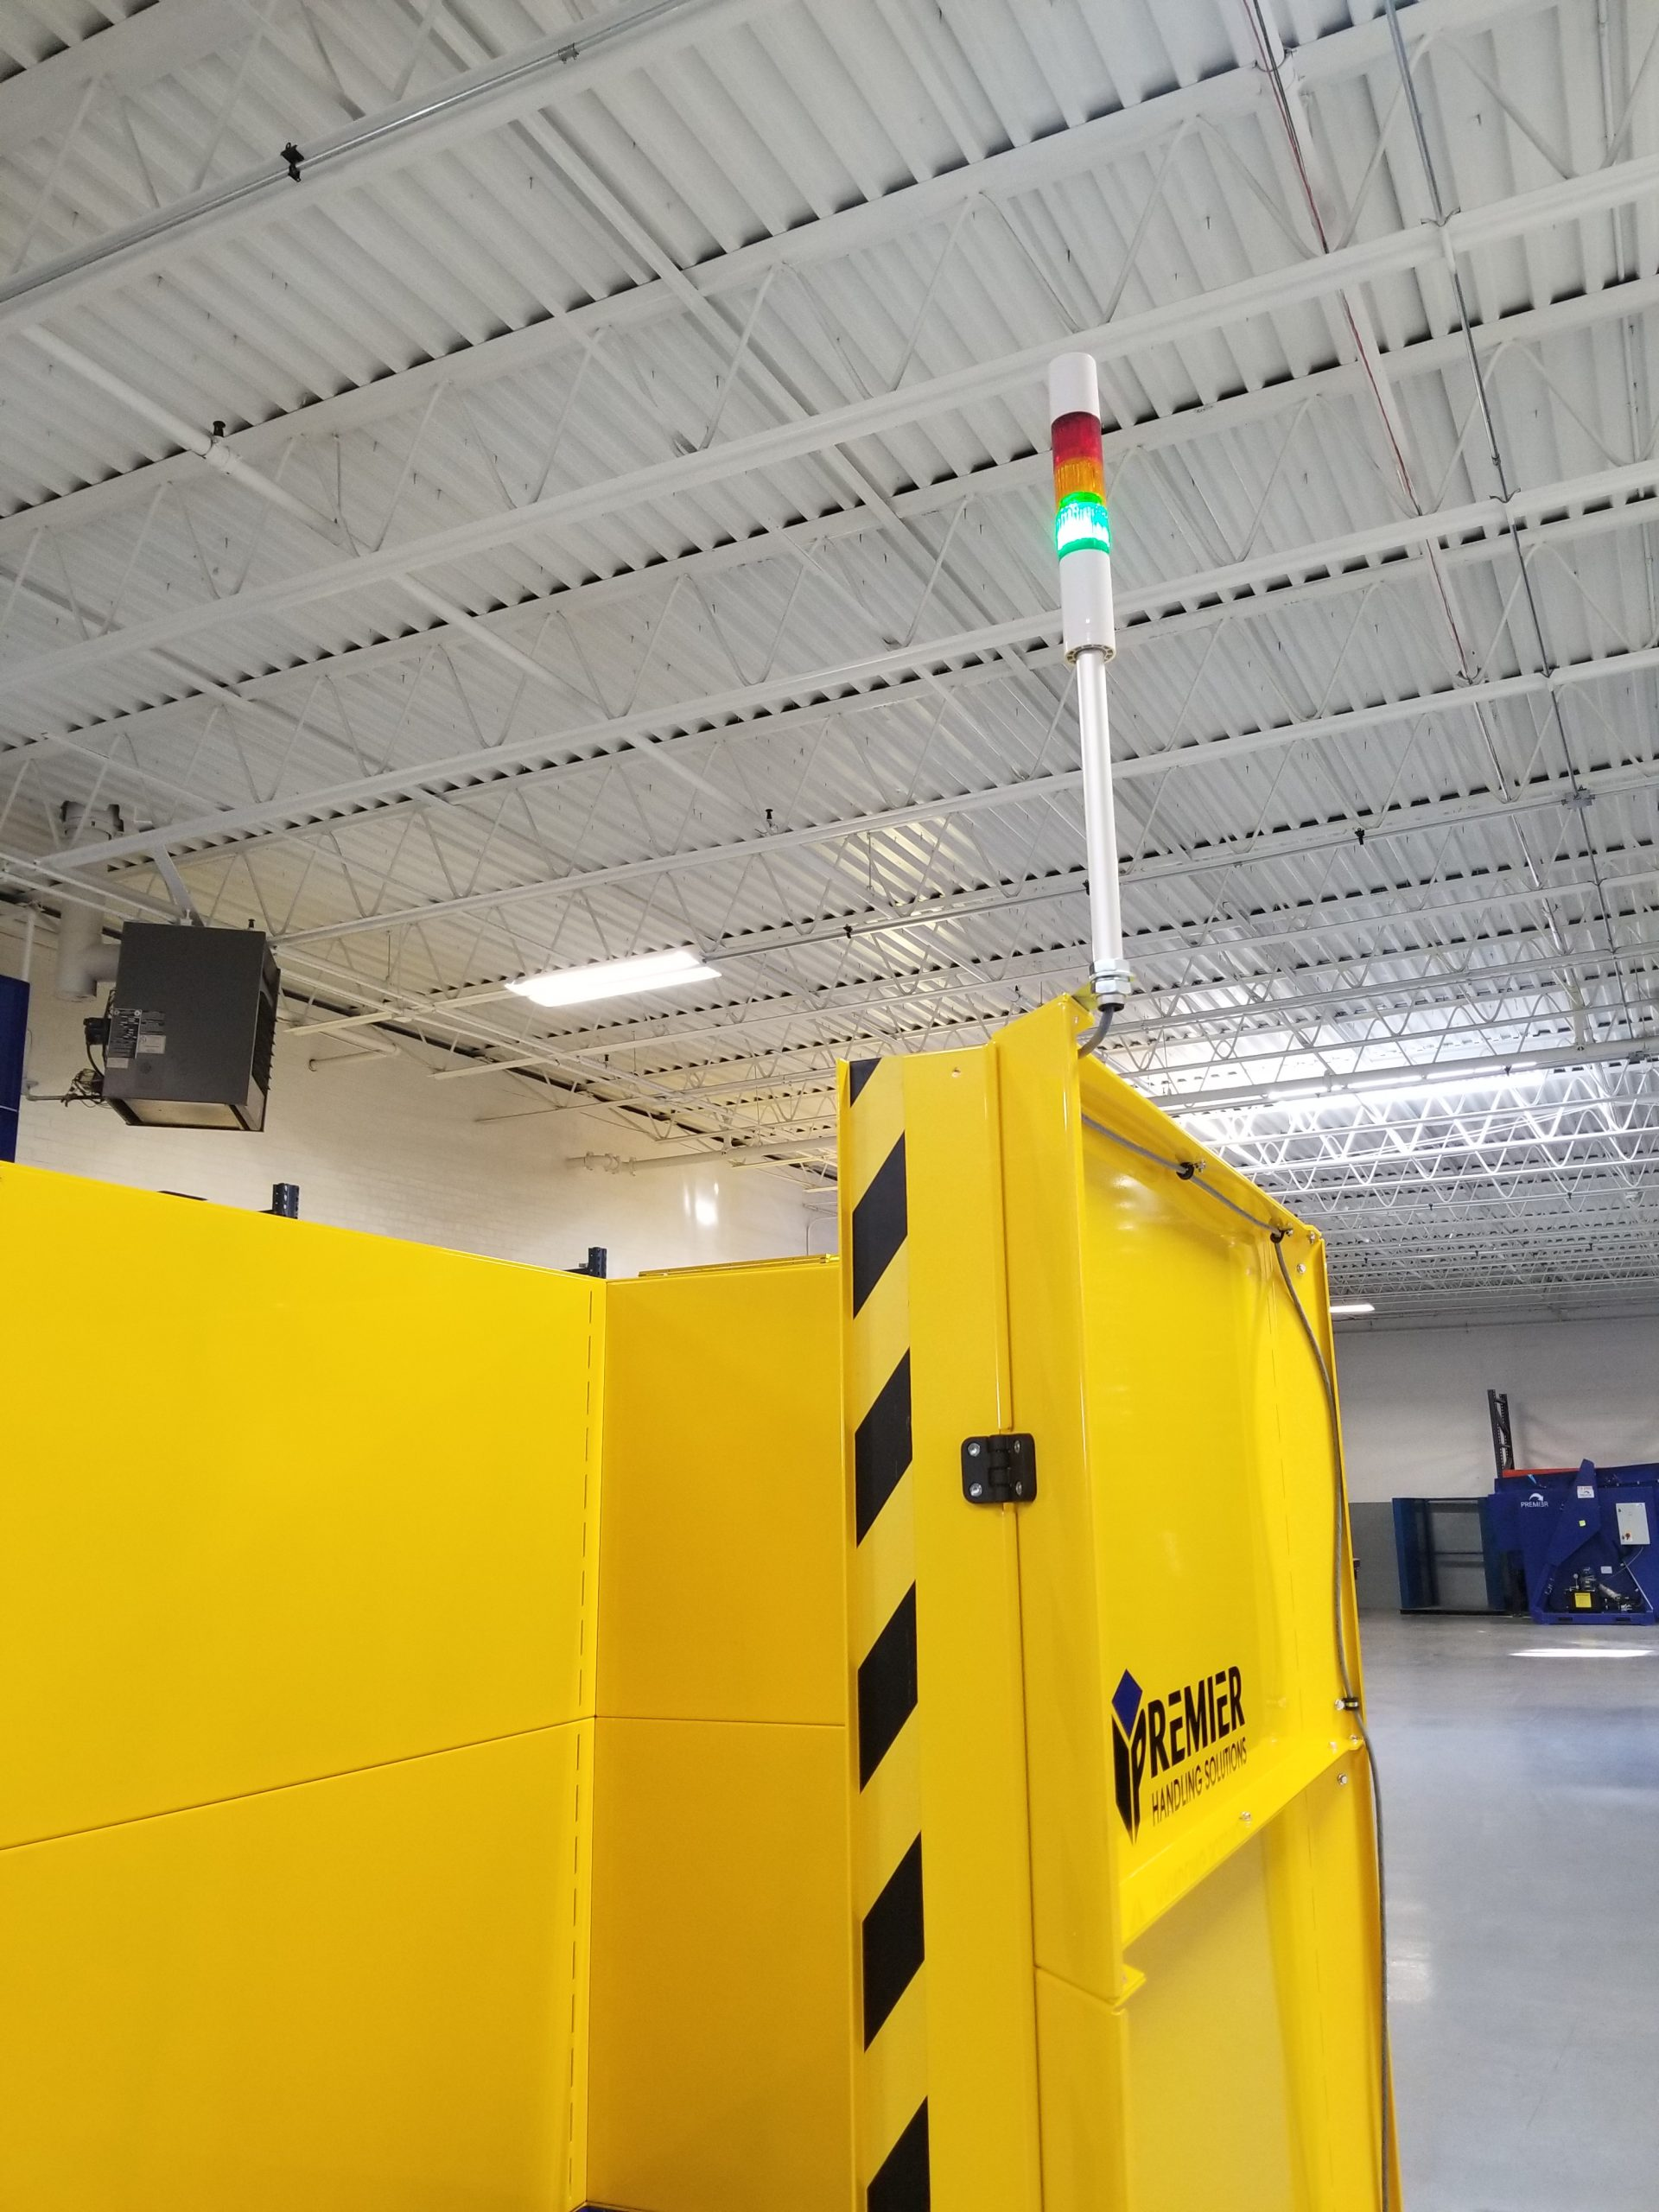 PALLET DISPENSER GMA PALLETS 6